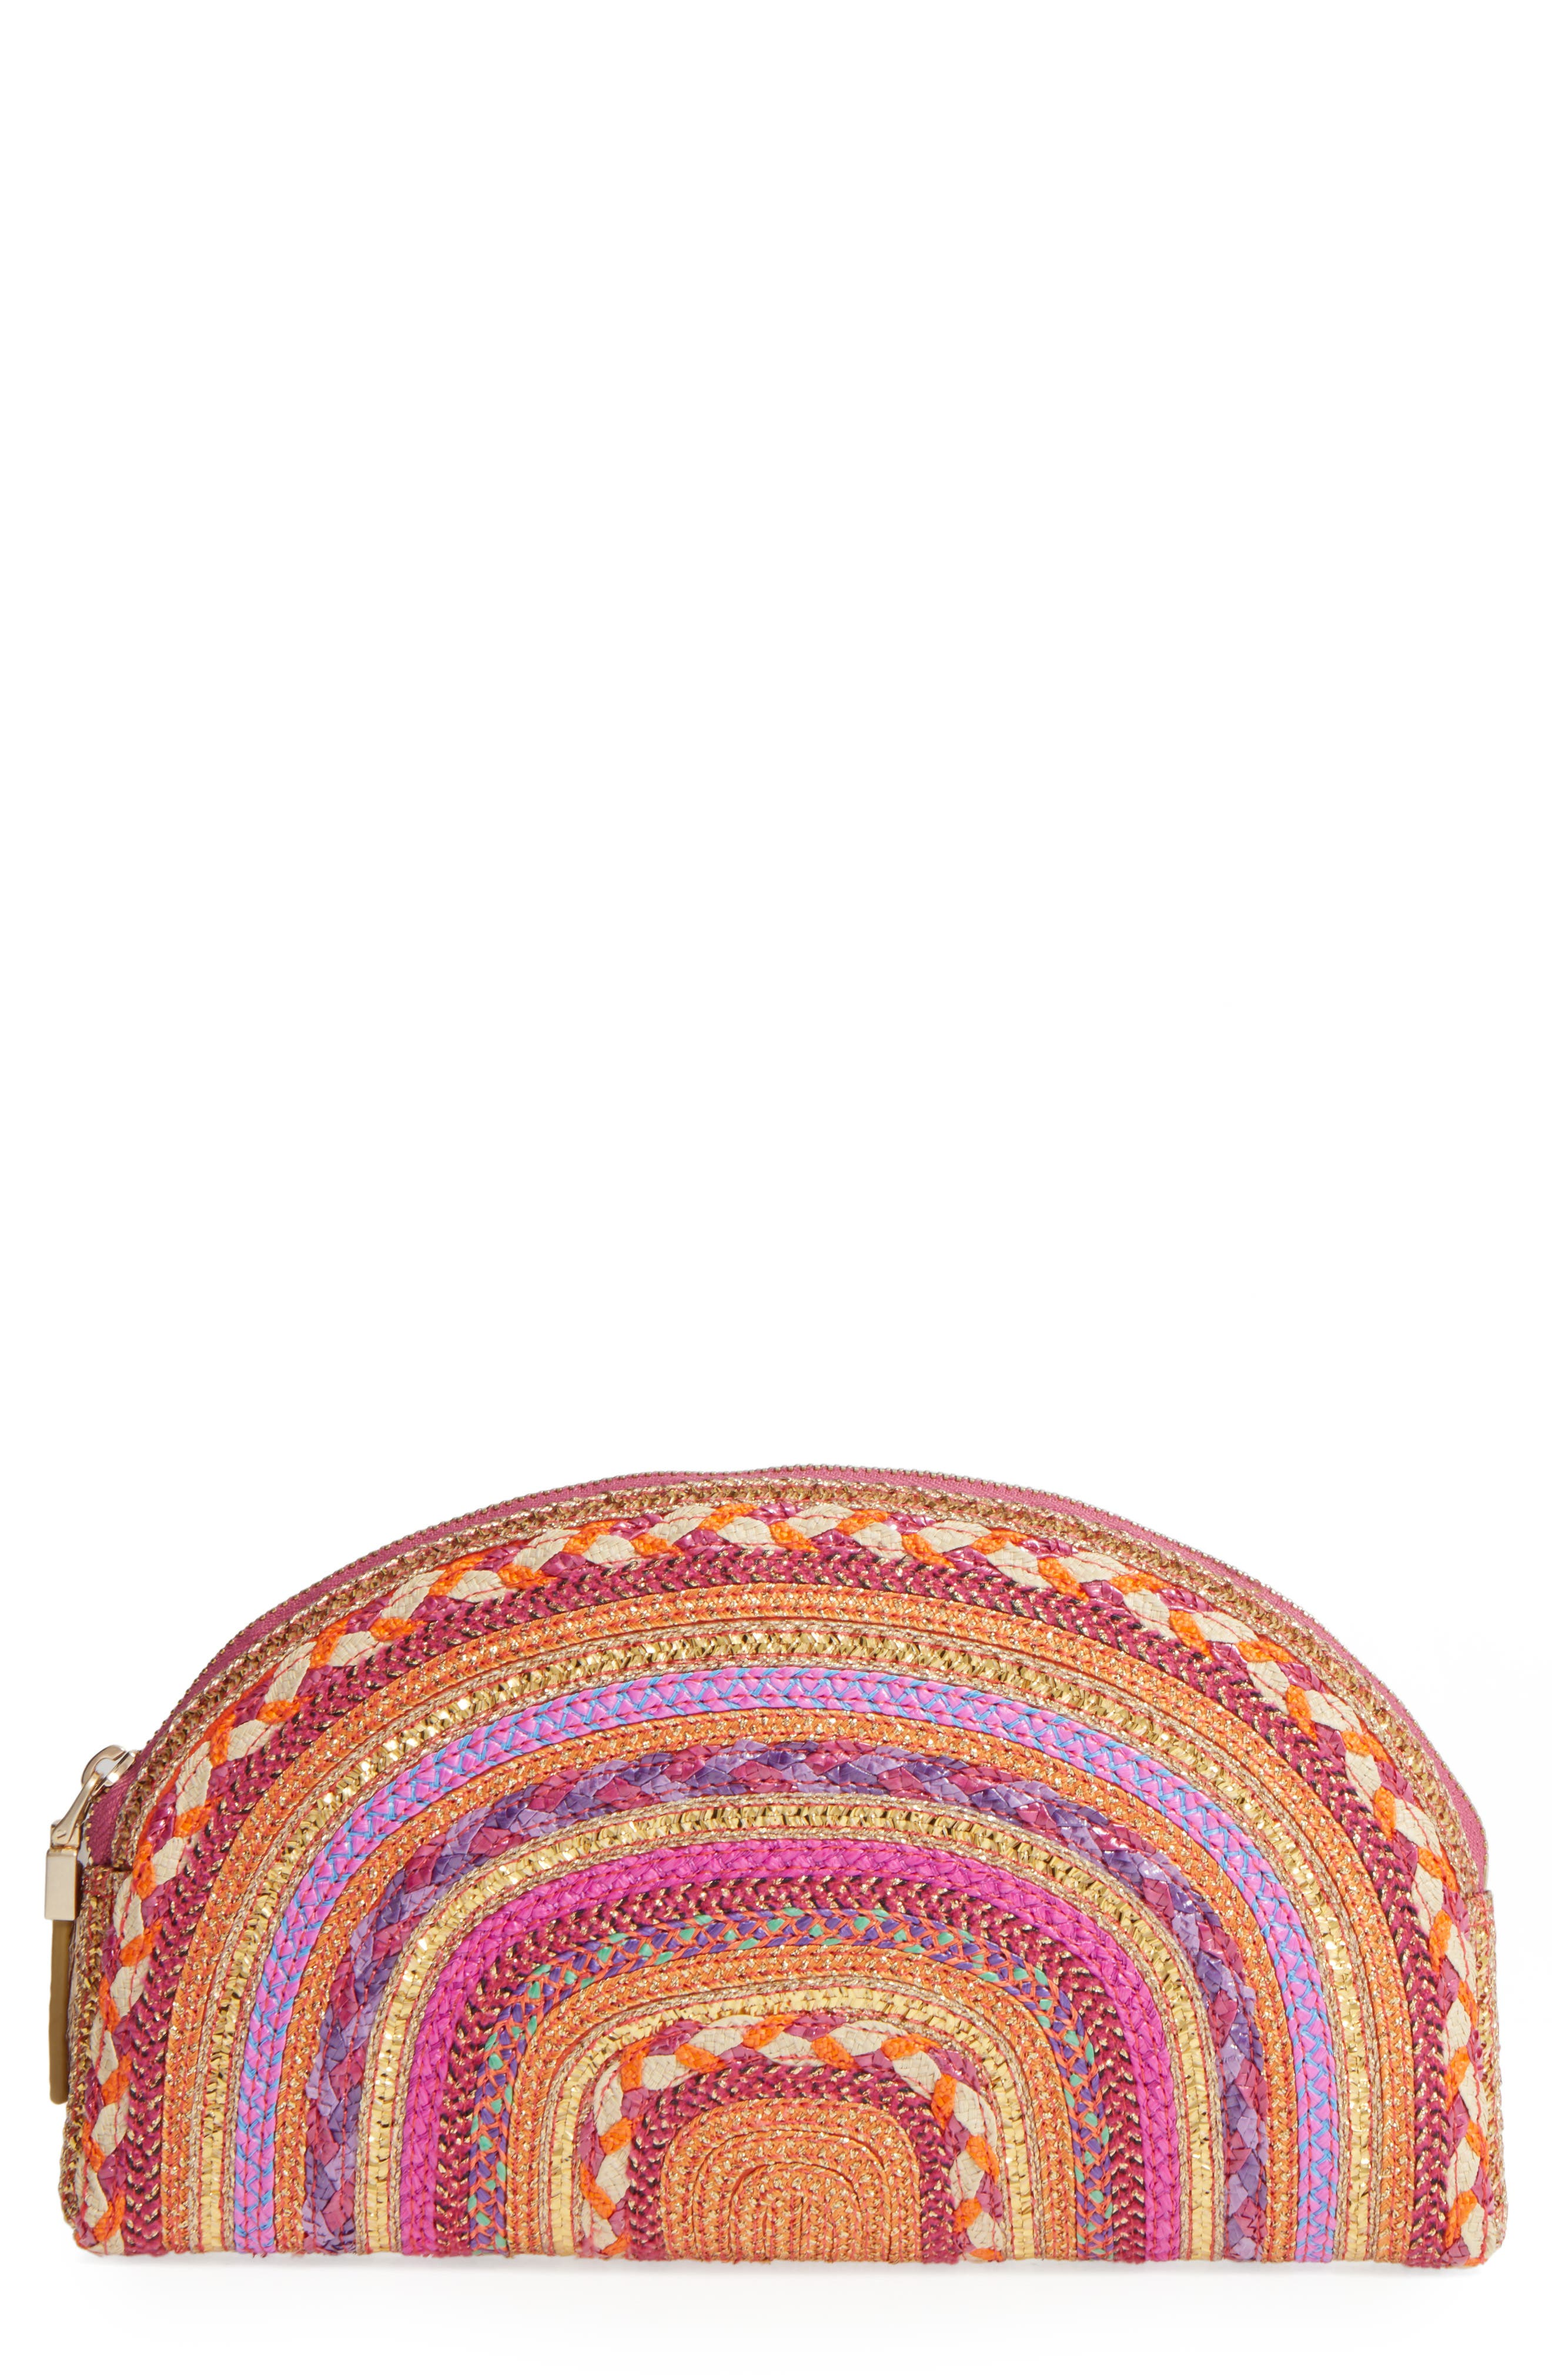 Alternate Image 1 Selected - Eric Javits Croissant Clutch